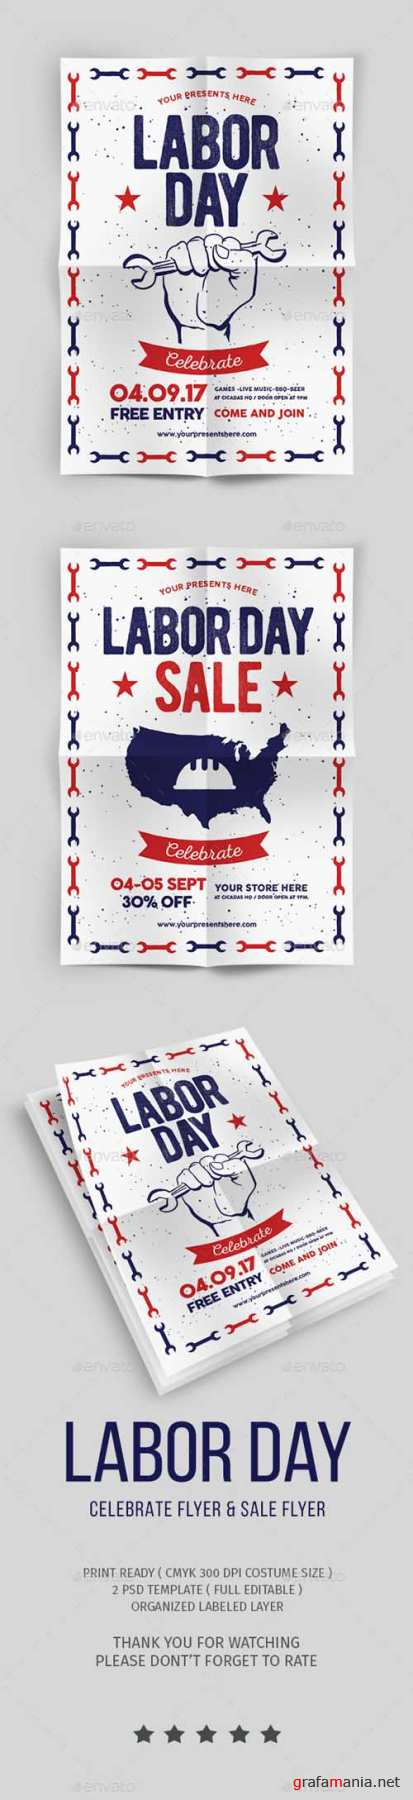 Labor Day Flyer & labor Day Sale Flyer 20514194